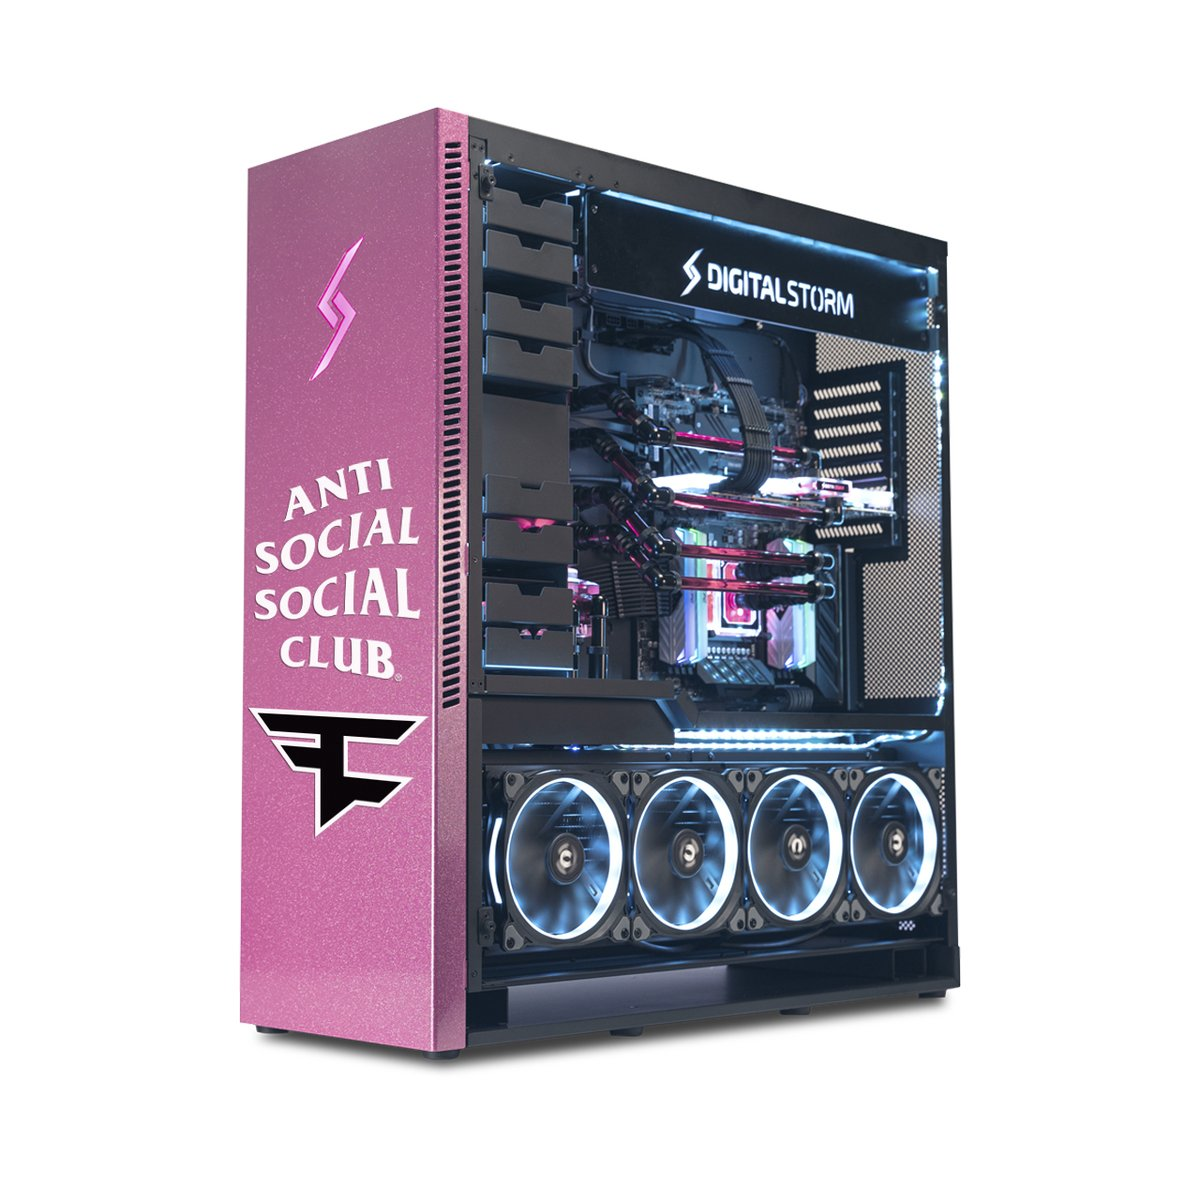 We're giving away ONE FaZe Clan x Anti Social Social Computer. Want it? Just RT & like this post - and then reply with why you think you should get it.  FaZe Clan by Anti Social Social Club, the Collection launches tomorrow, August 29th at 8AM Pacific/11AM Eastern https://t.co/btKPn2PEZn